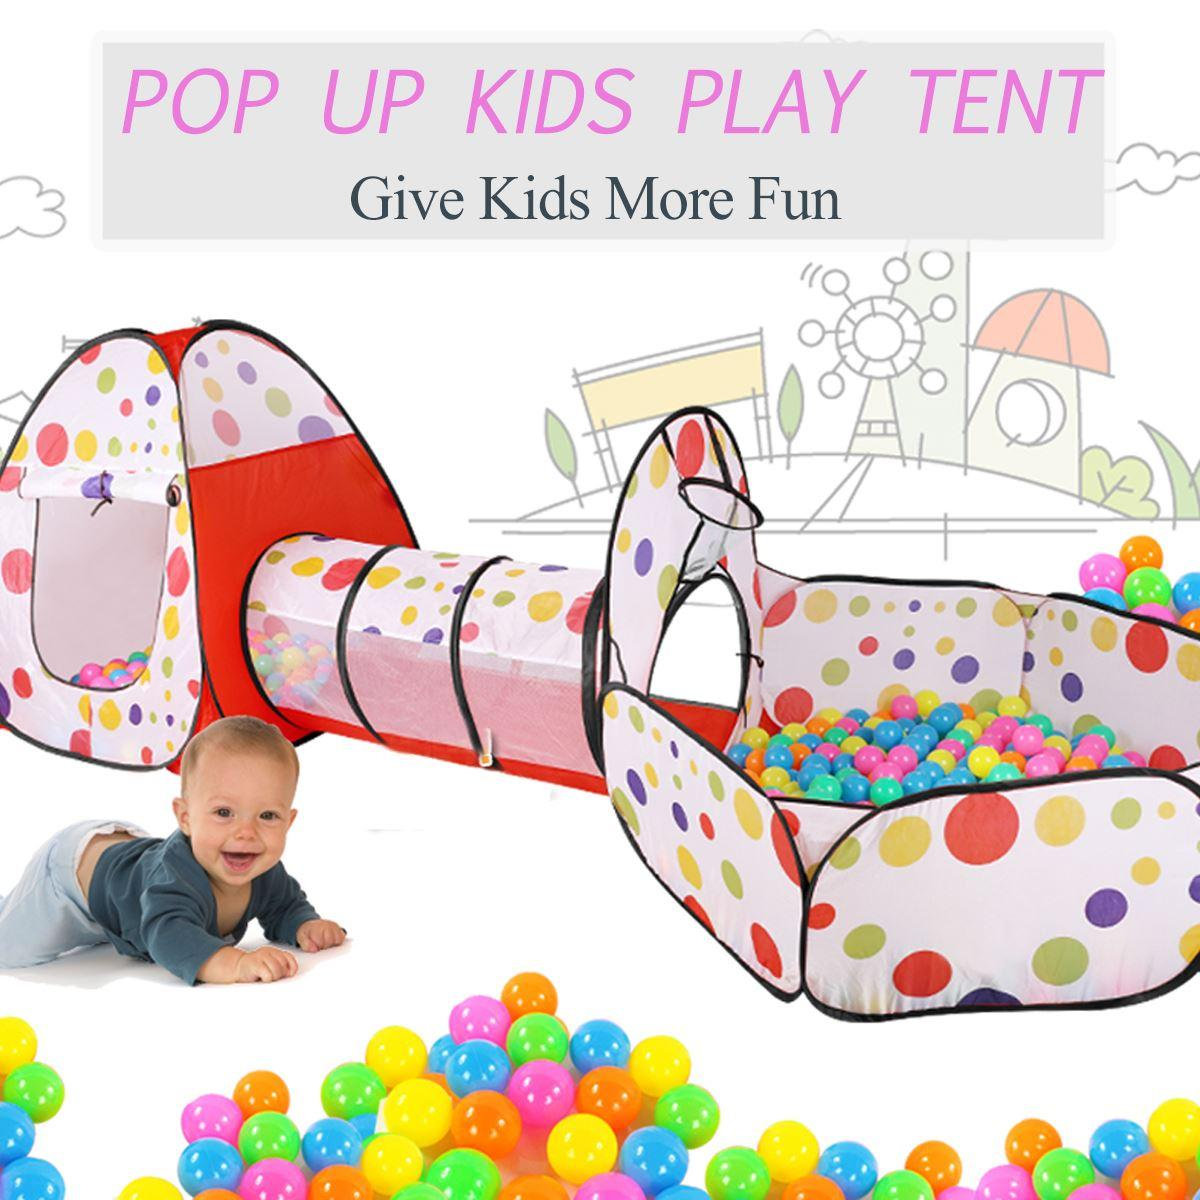 3 In 1 Pop Up Play Tent Playhouse Tunnel Ball Pit Baby Play Gift Kids Indoor Outdoor Playhouse Kids Play Gaming Toys House Tents For Kids Indoor Play Tents ...  sc 1 st  DHgate.com : tunnel tent for kids - memphite.com